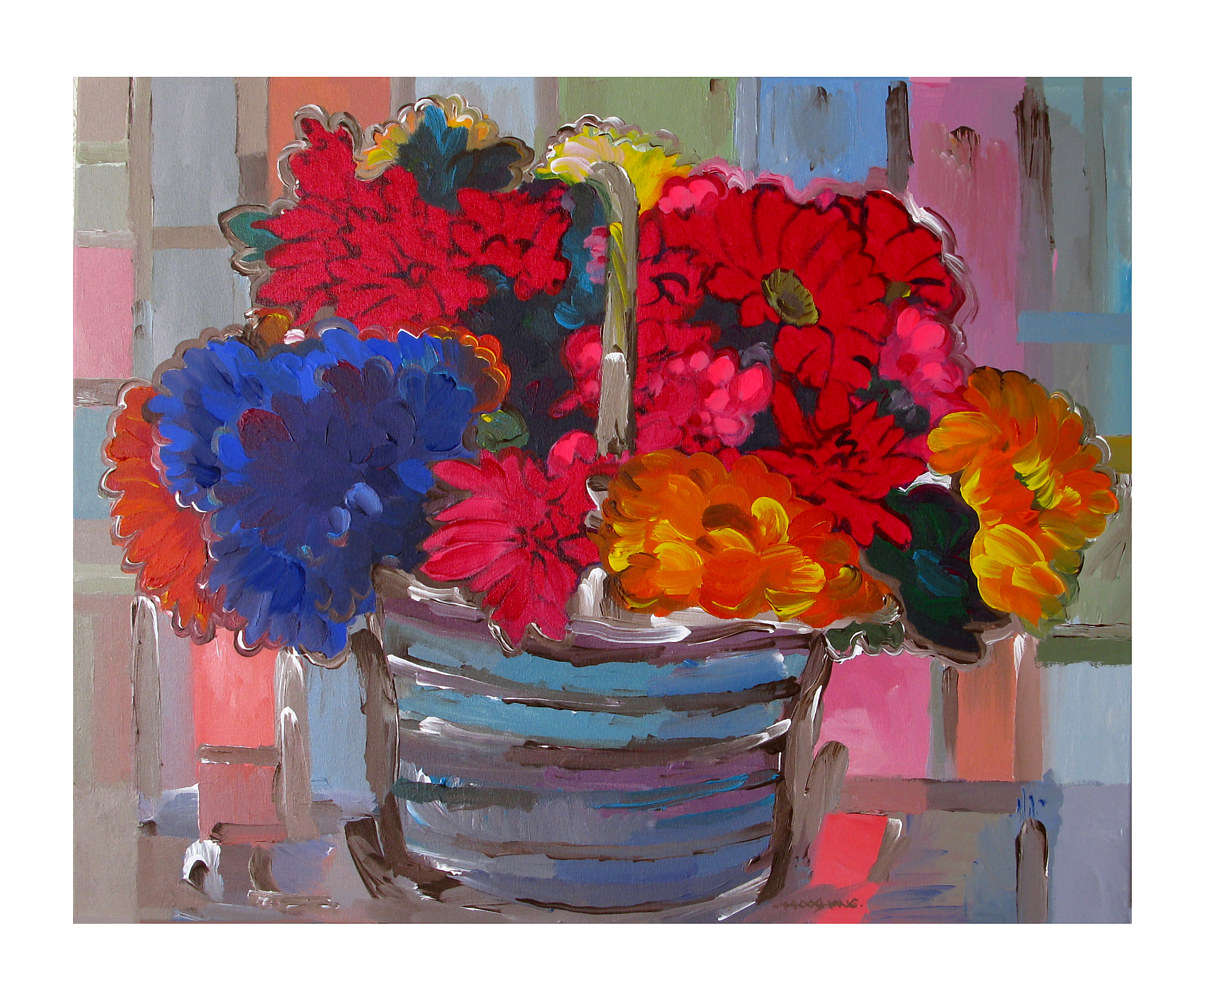 Acrylic painting Basket of Flowers II, 24x30 inches by Hooshang Khorasani